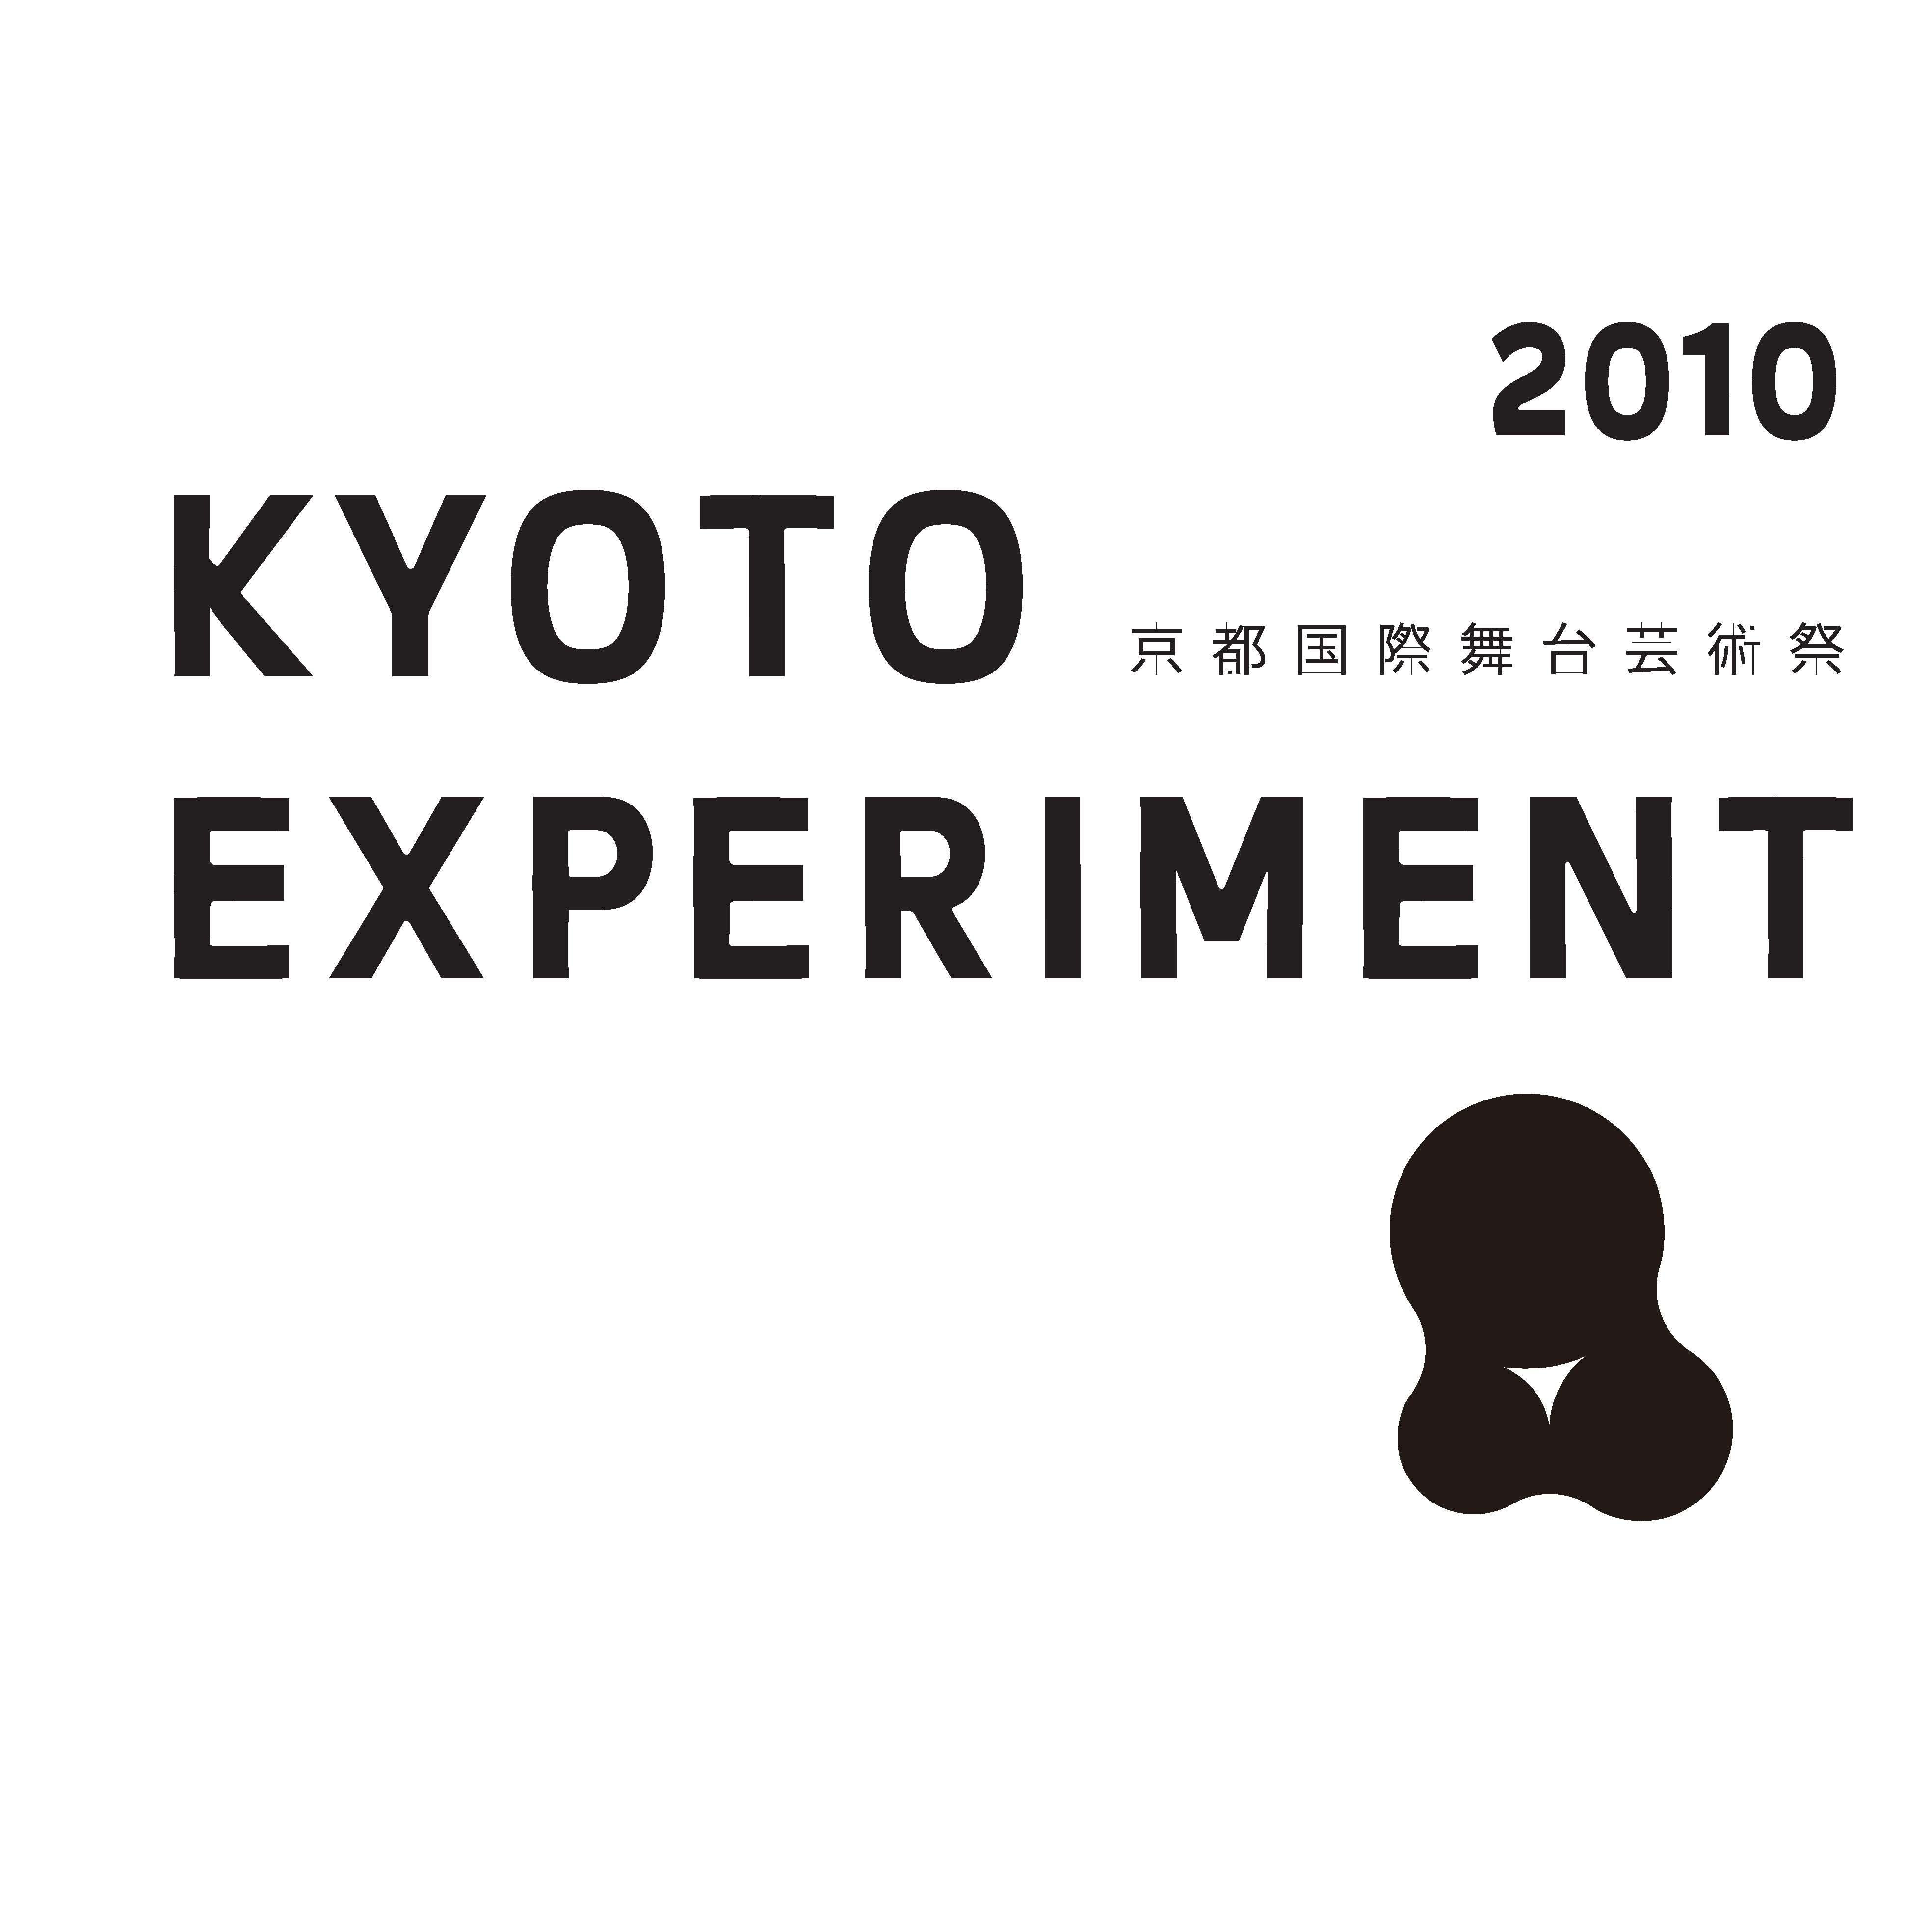 KYOTO EXPERIMENT ロゴ